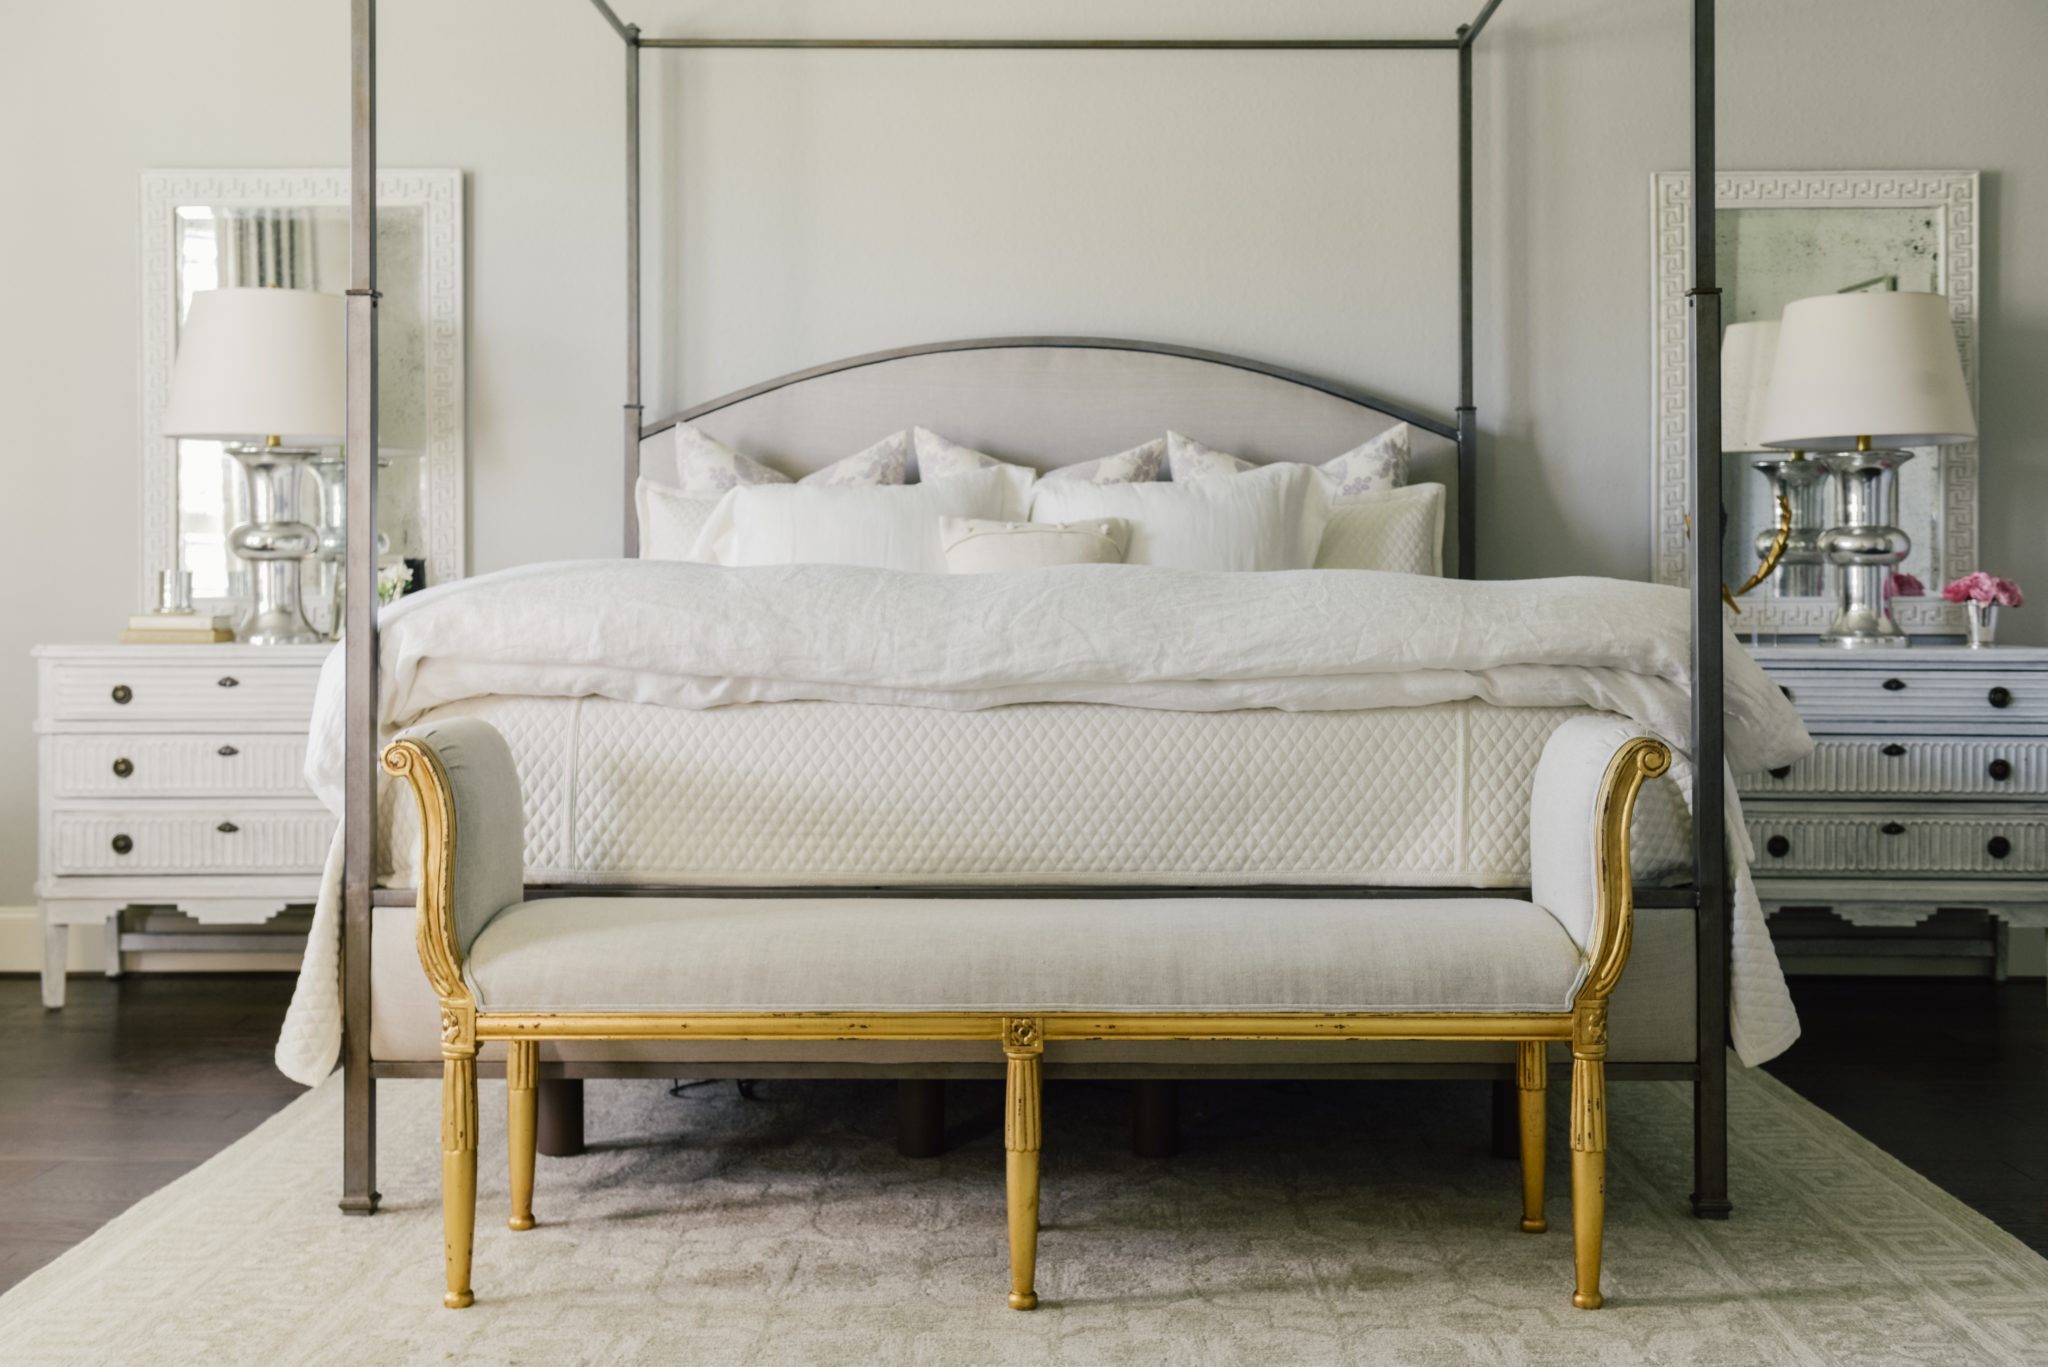 Houston Master Bedroom featuring Iron Canopy Bed and Neutral Palette by Paloma Contreras Design